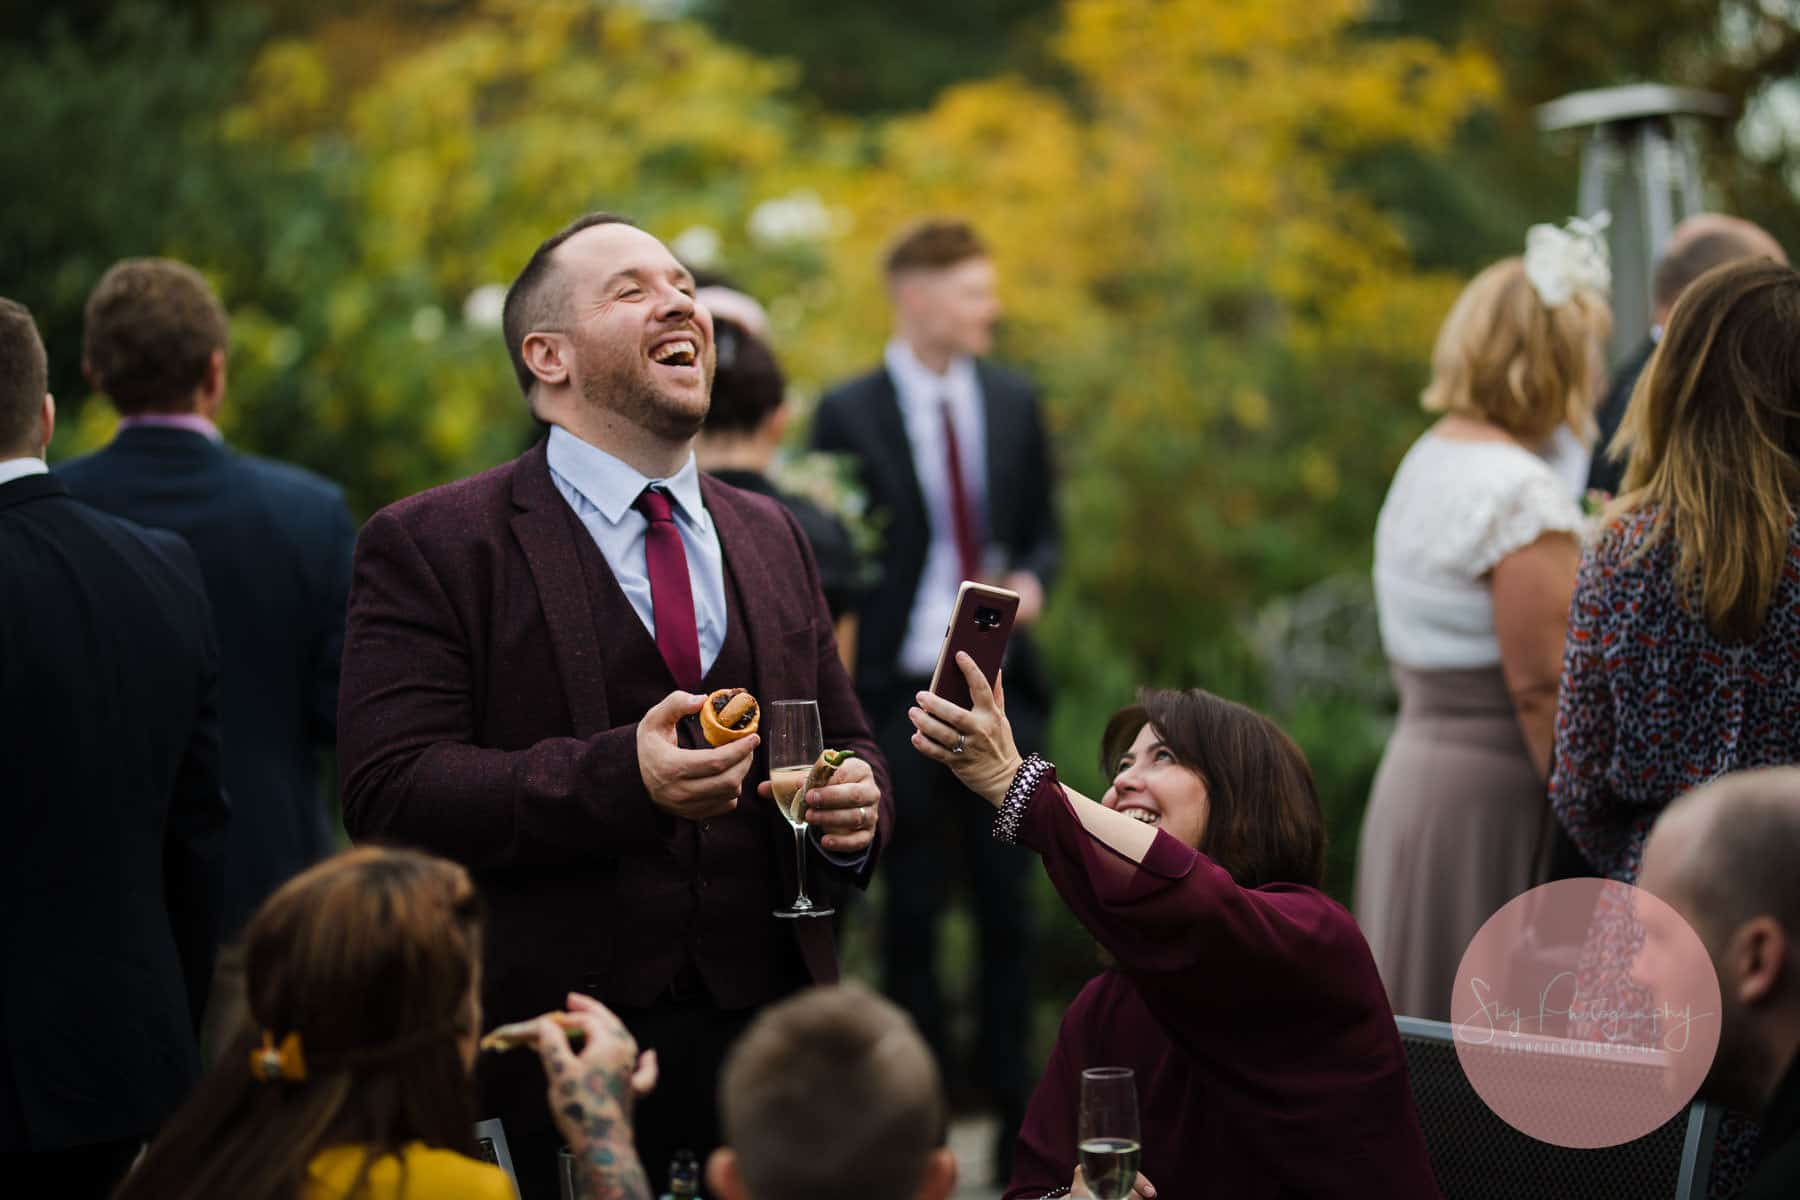 wedding guest laughing at a funny joke